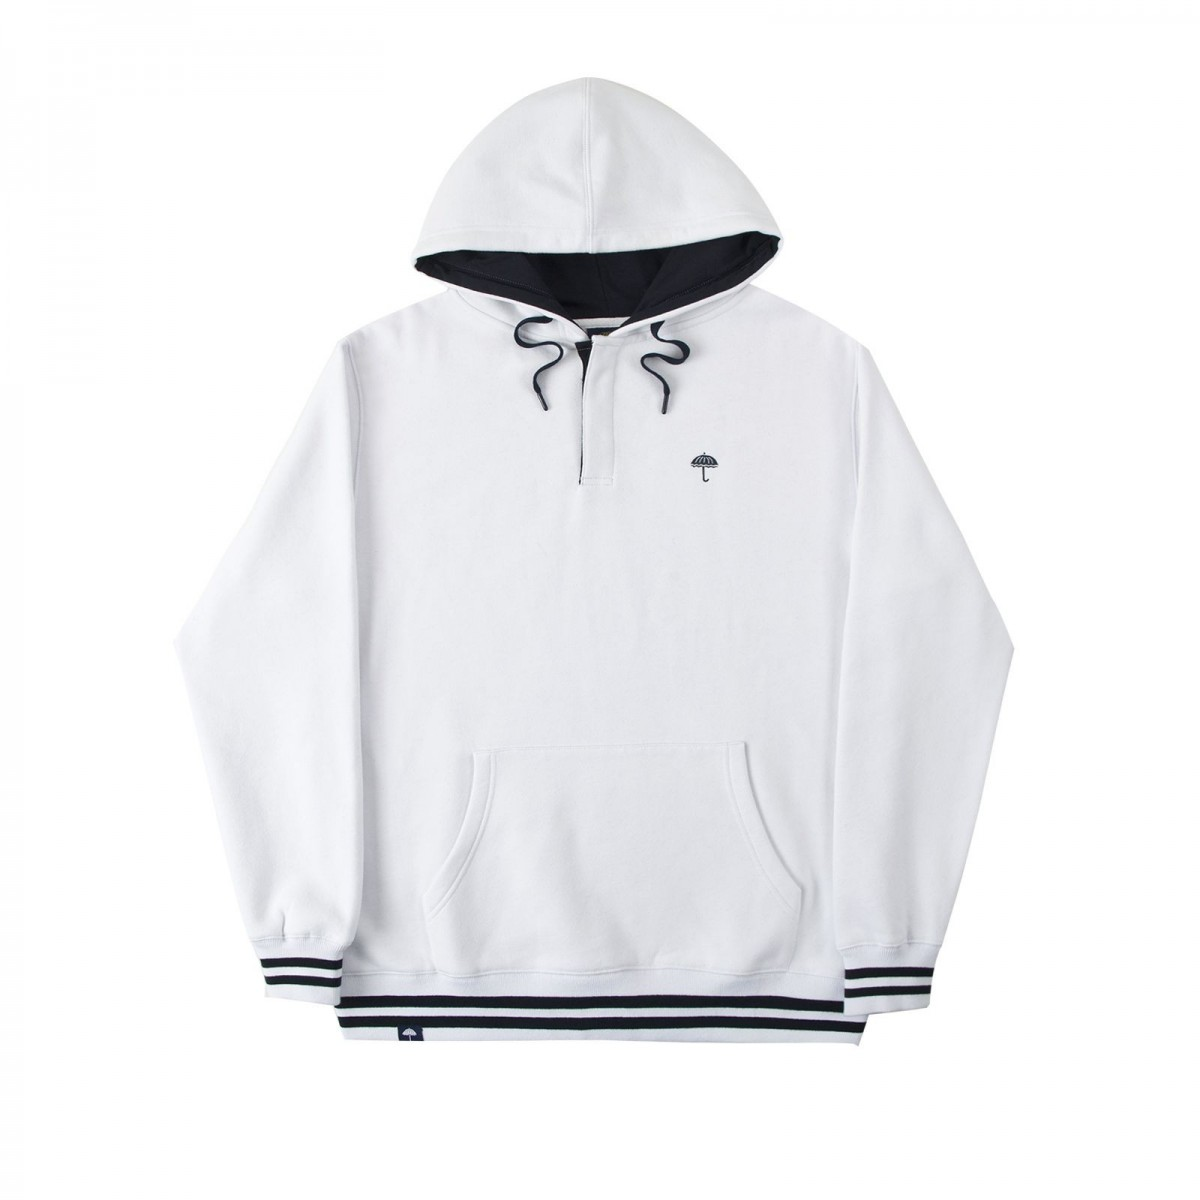 Sudadera hélas buttoned hoodie white